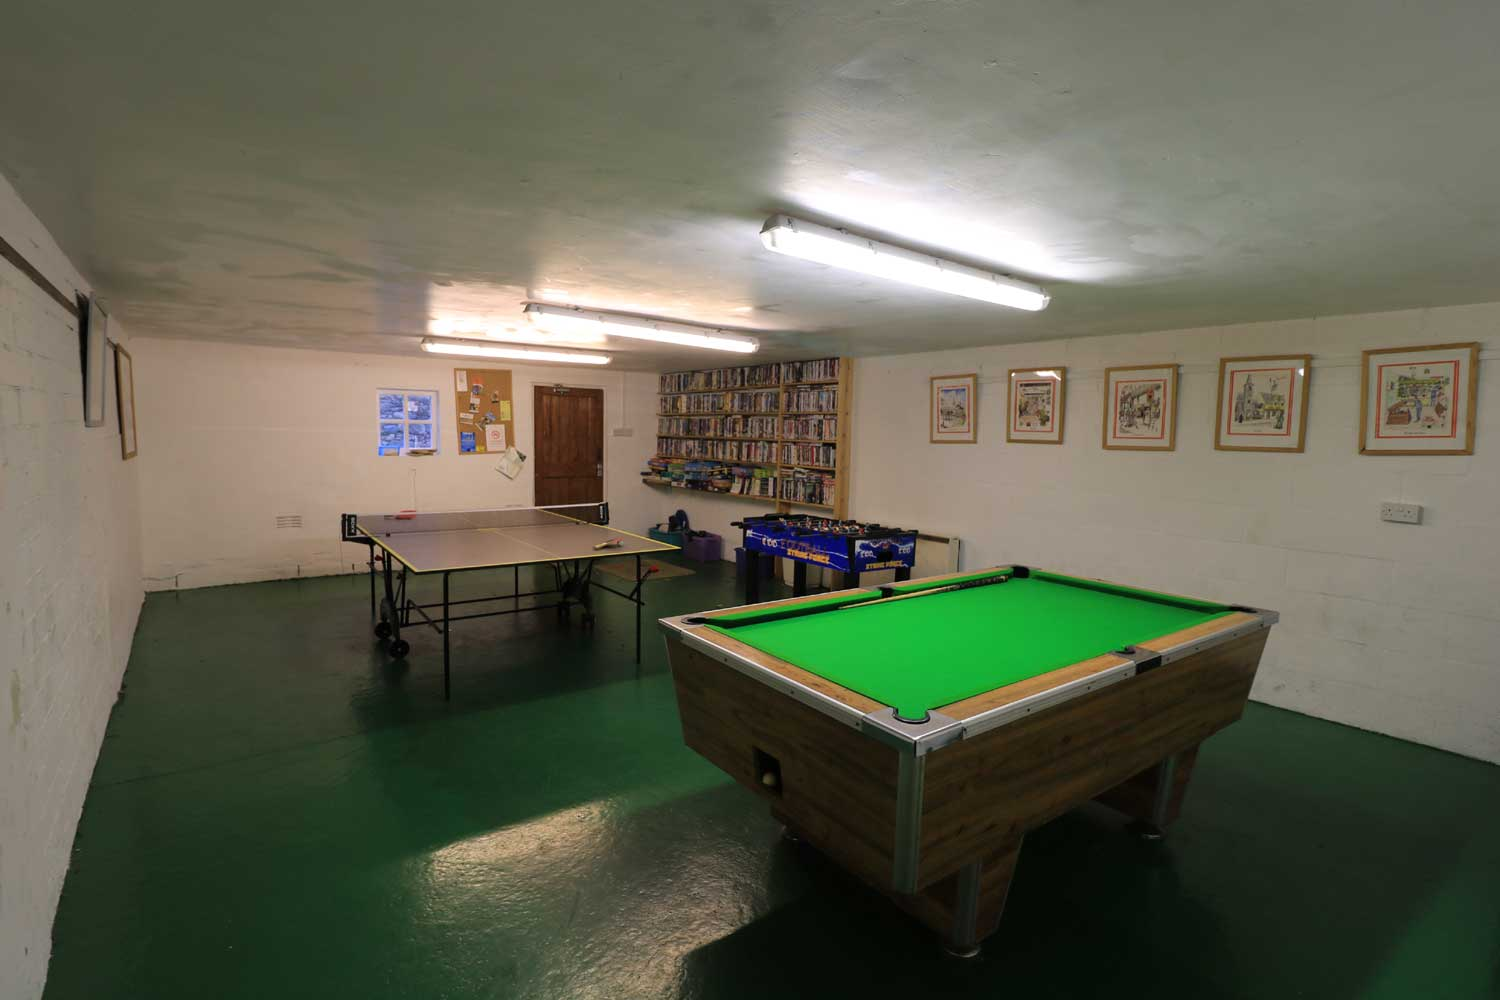 The Games Room At Melbecks Cottages, Bassenthwaite